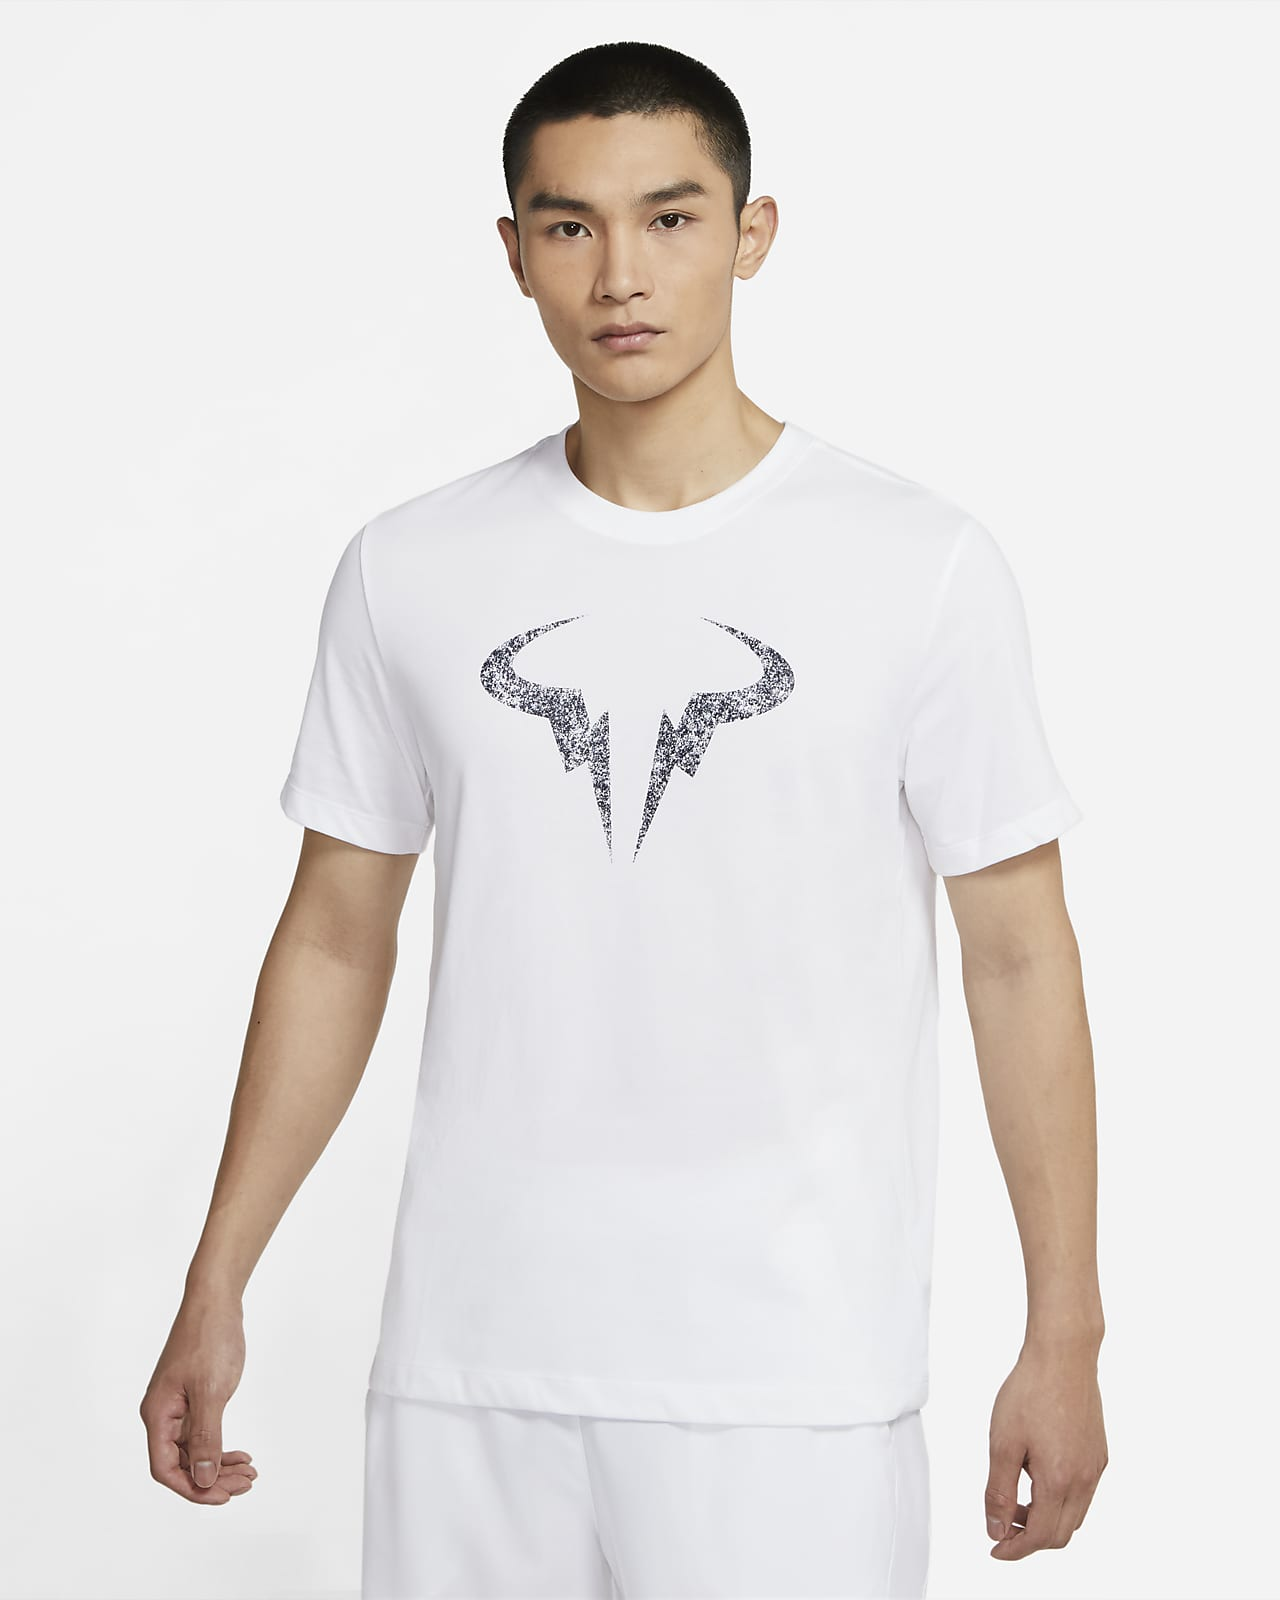 Rafa Men's Tennis T-Shirt